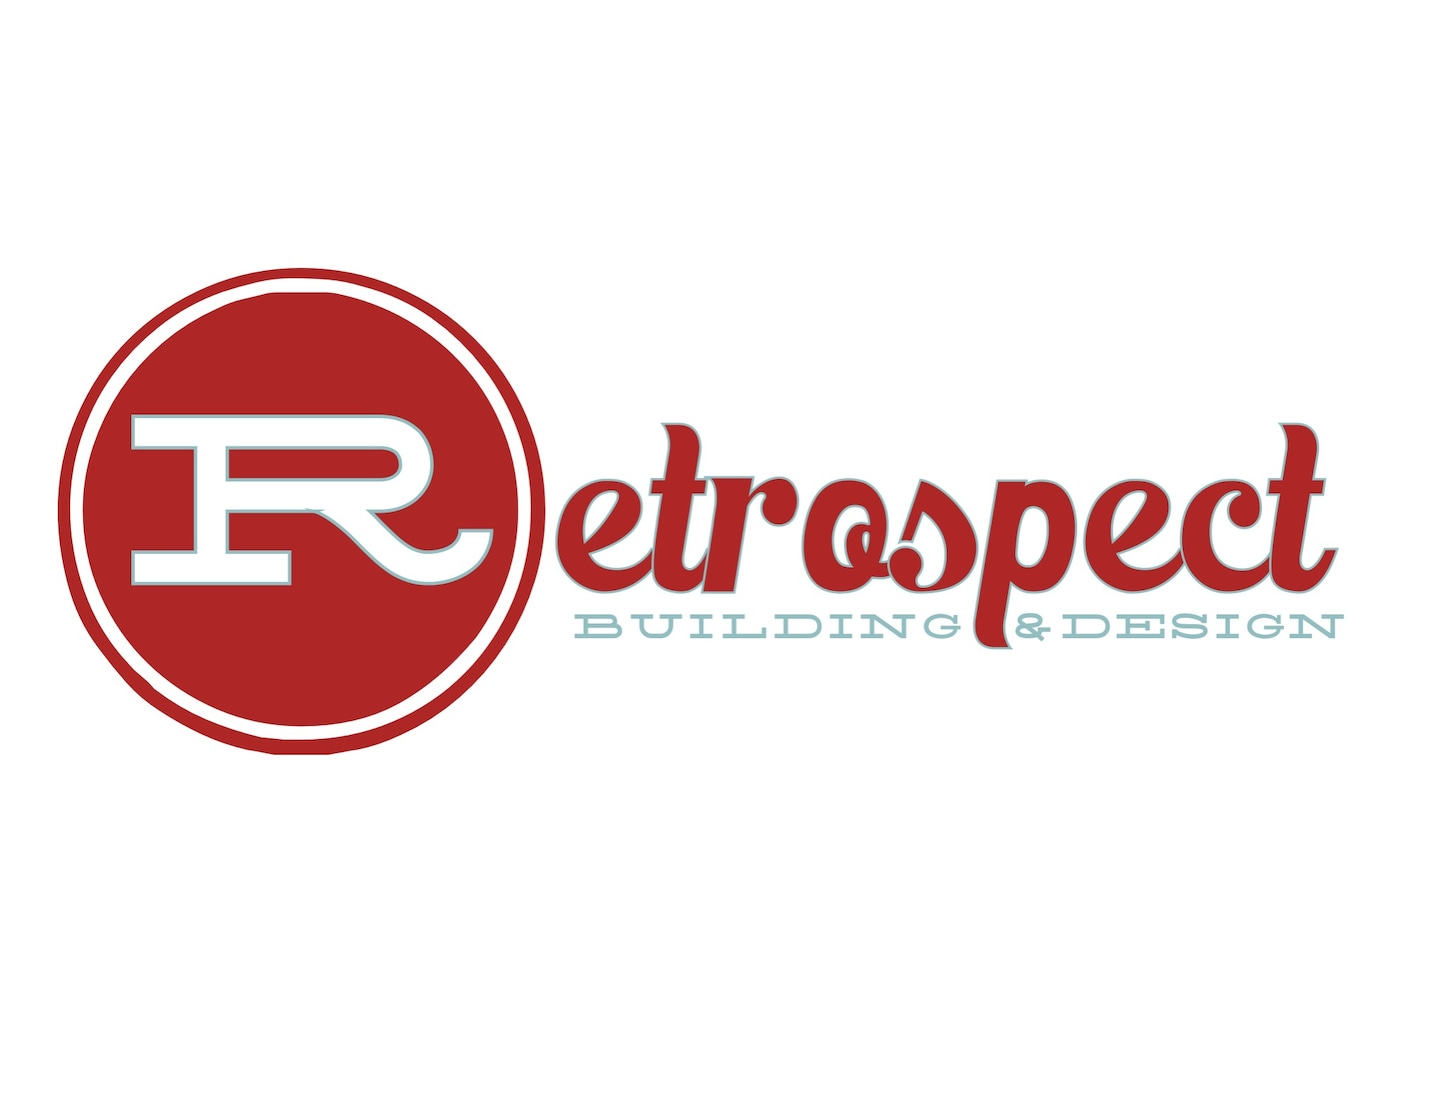 Retrospect Building & Design